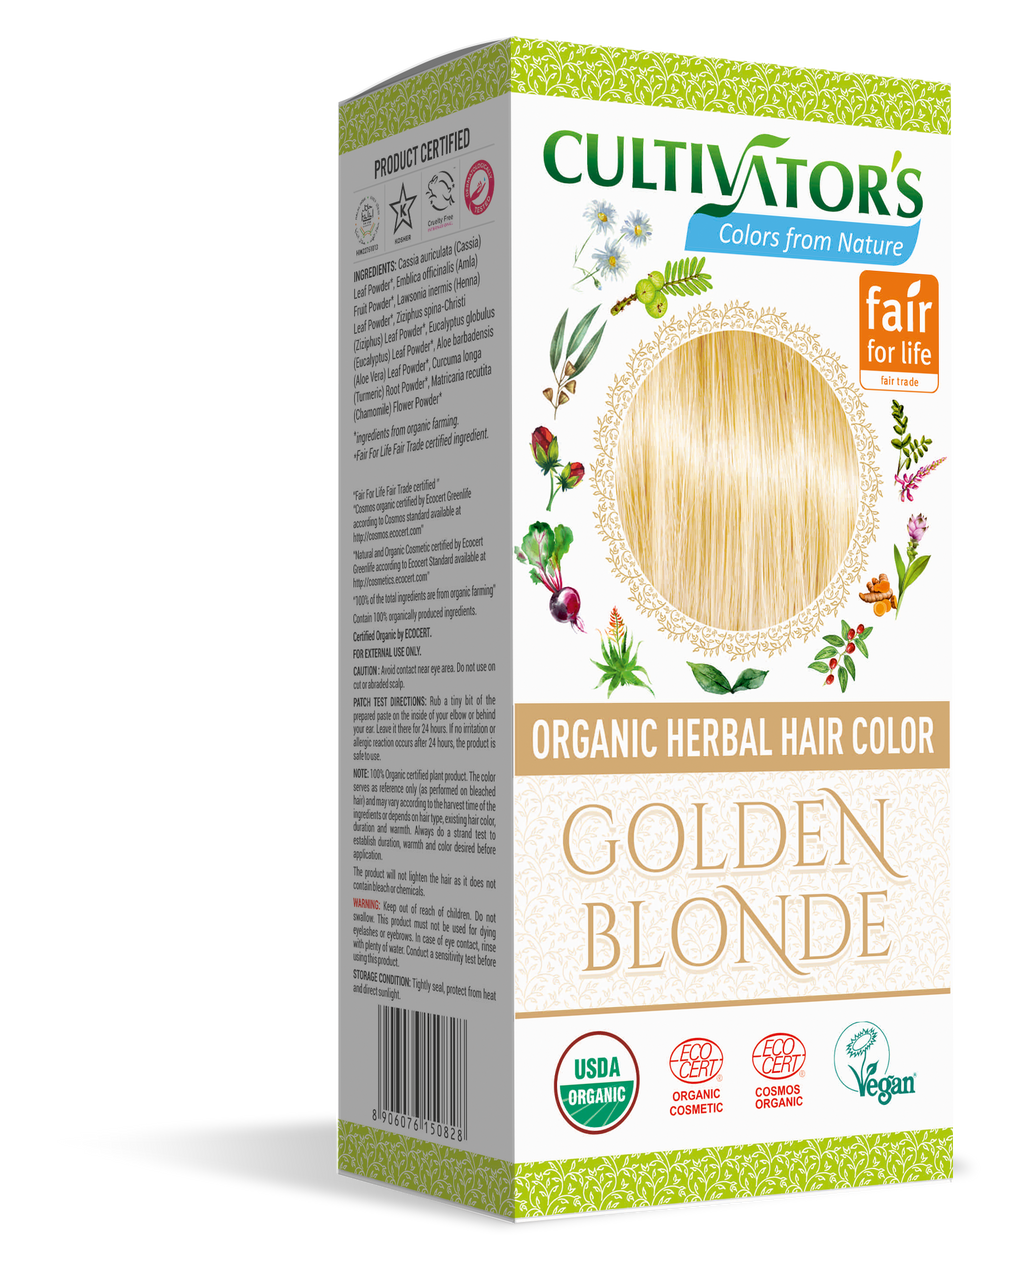 ORGANIC HERBAL HAIR COLOR GOLDEN BLONDE